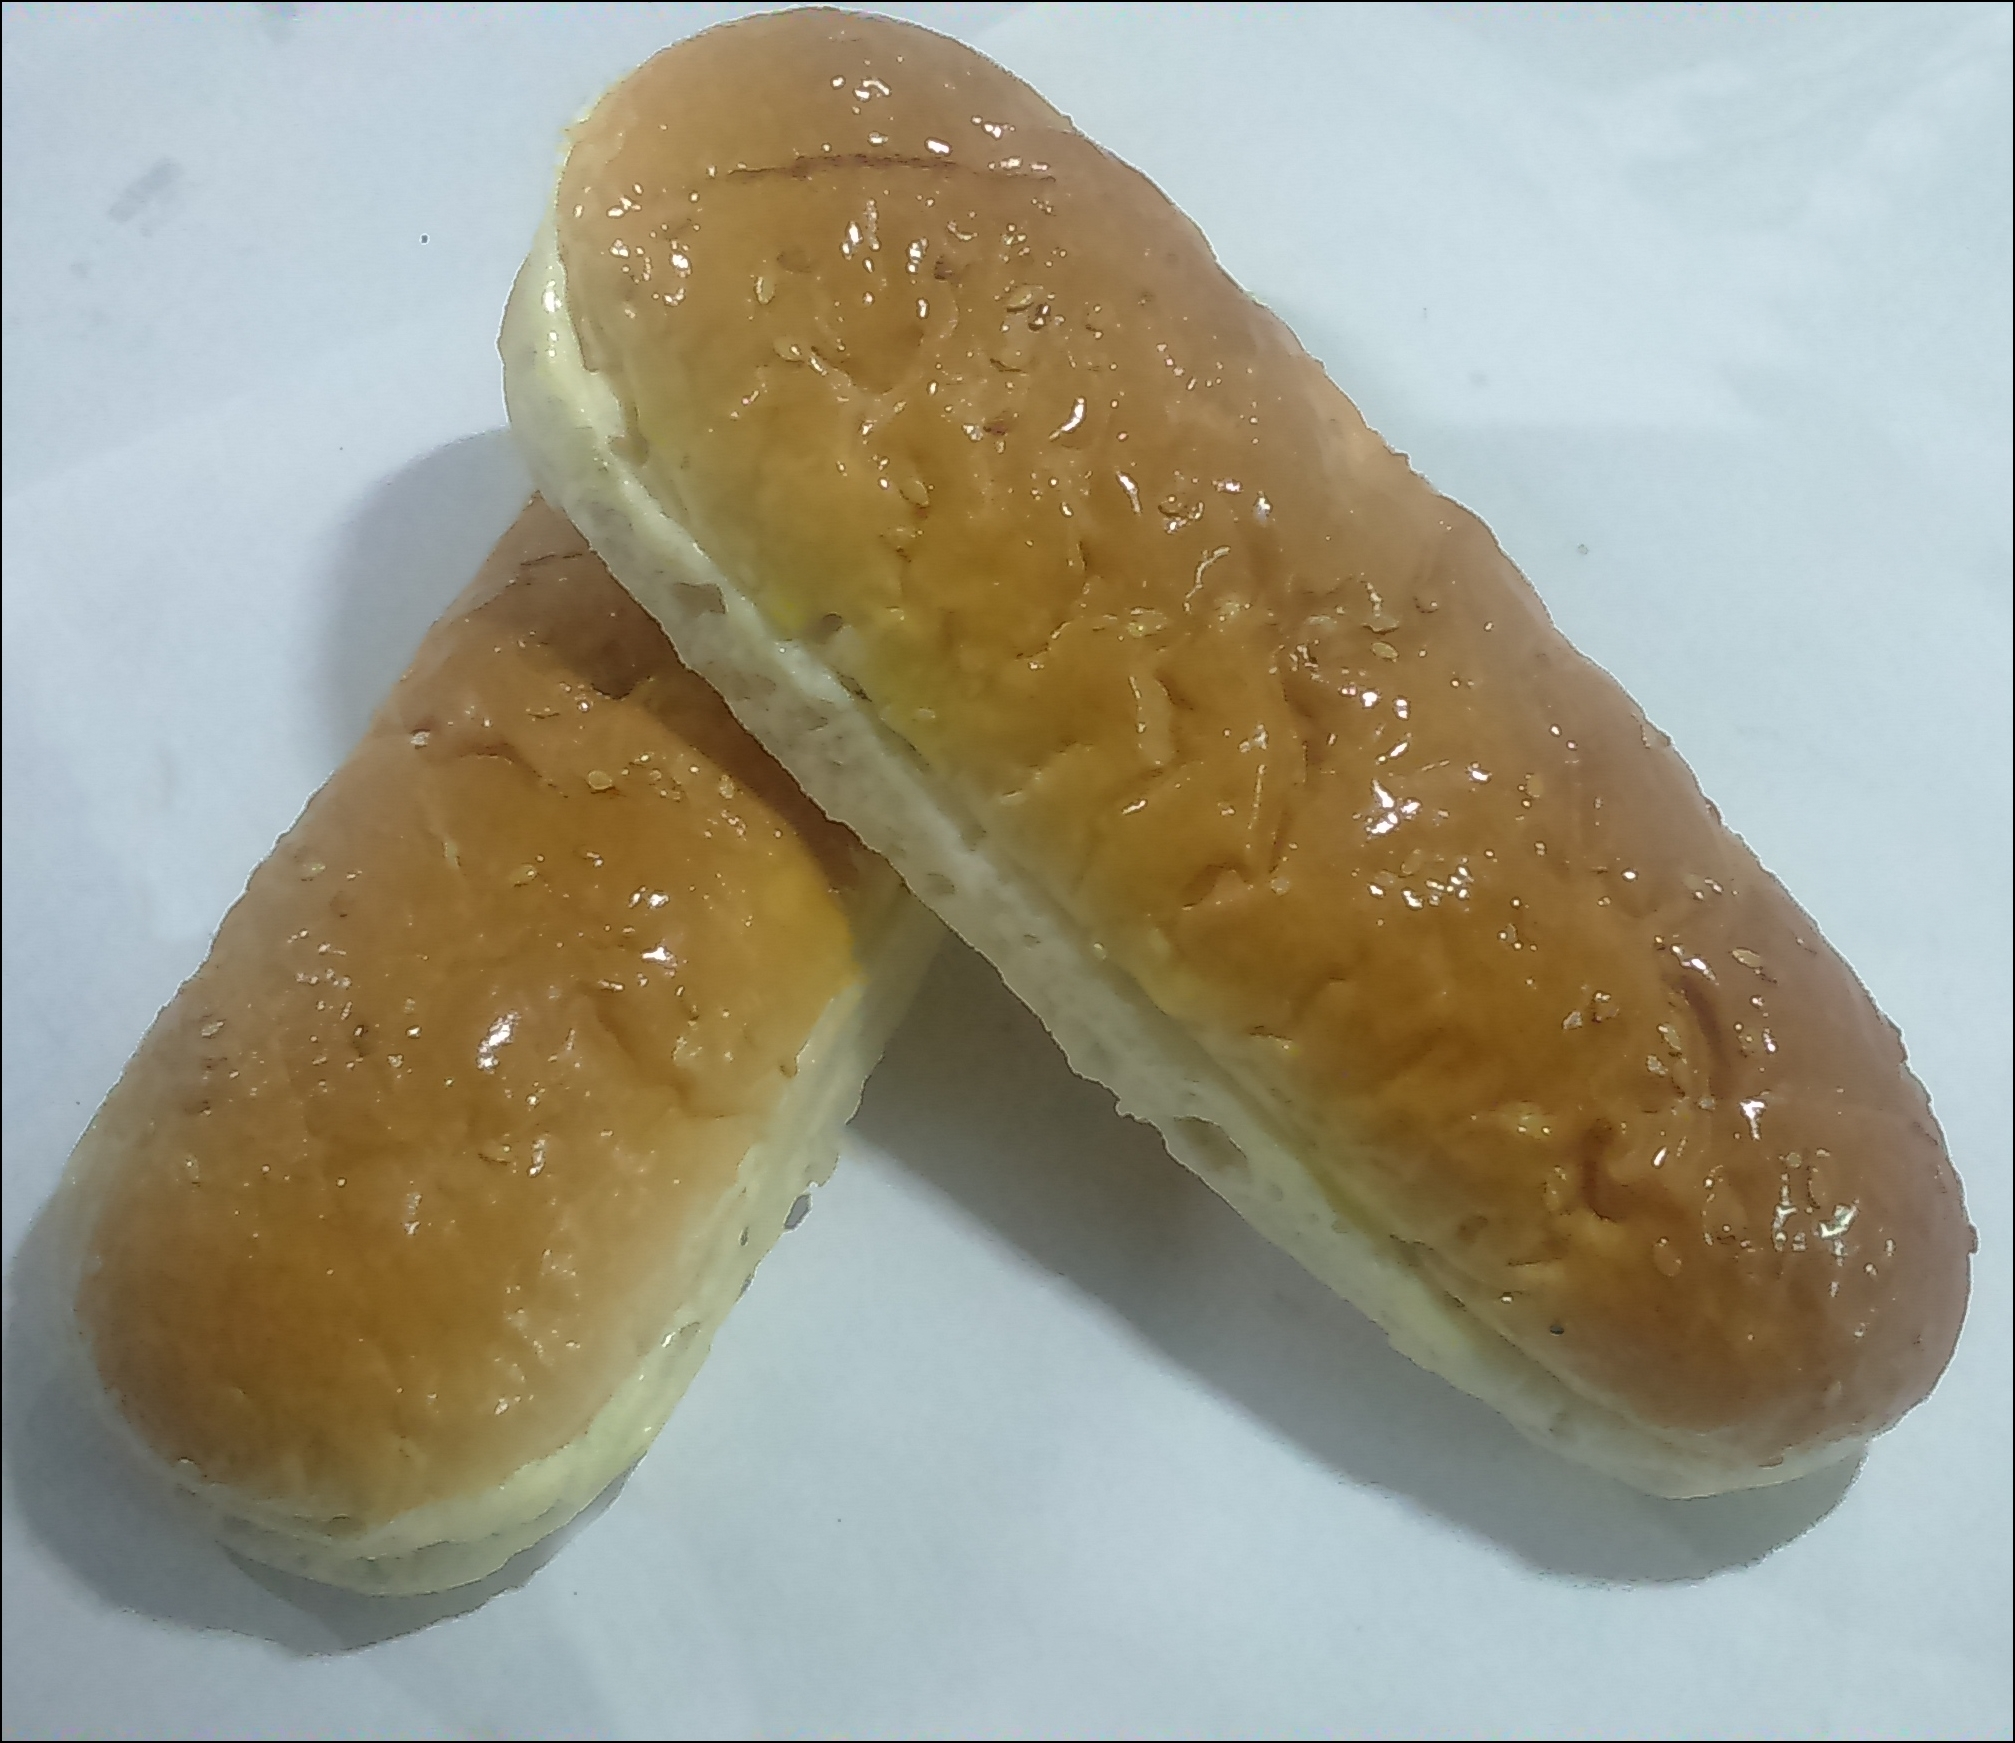 Breads image